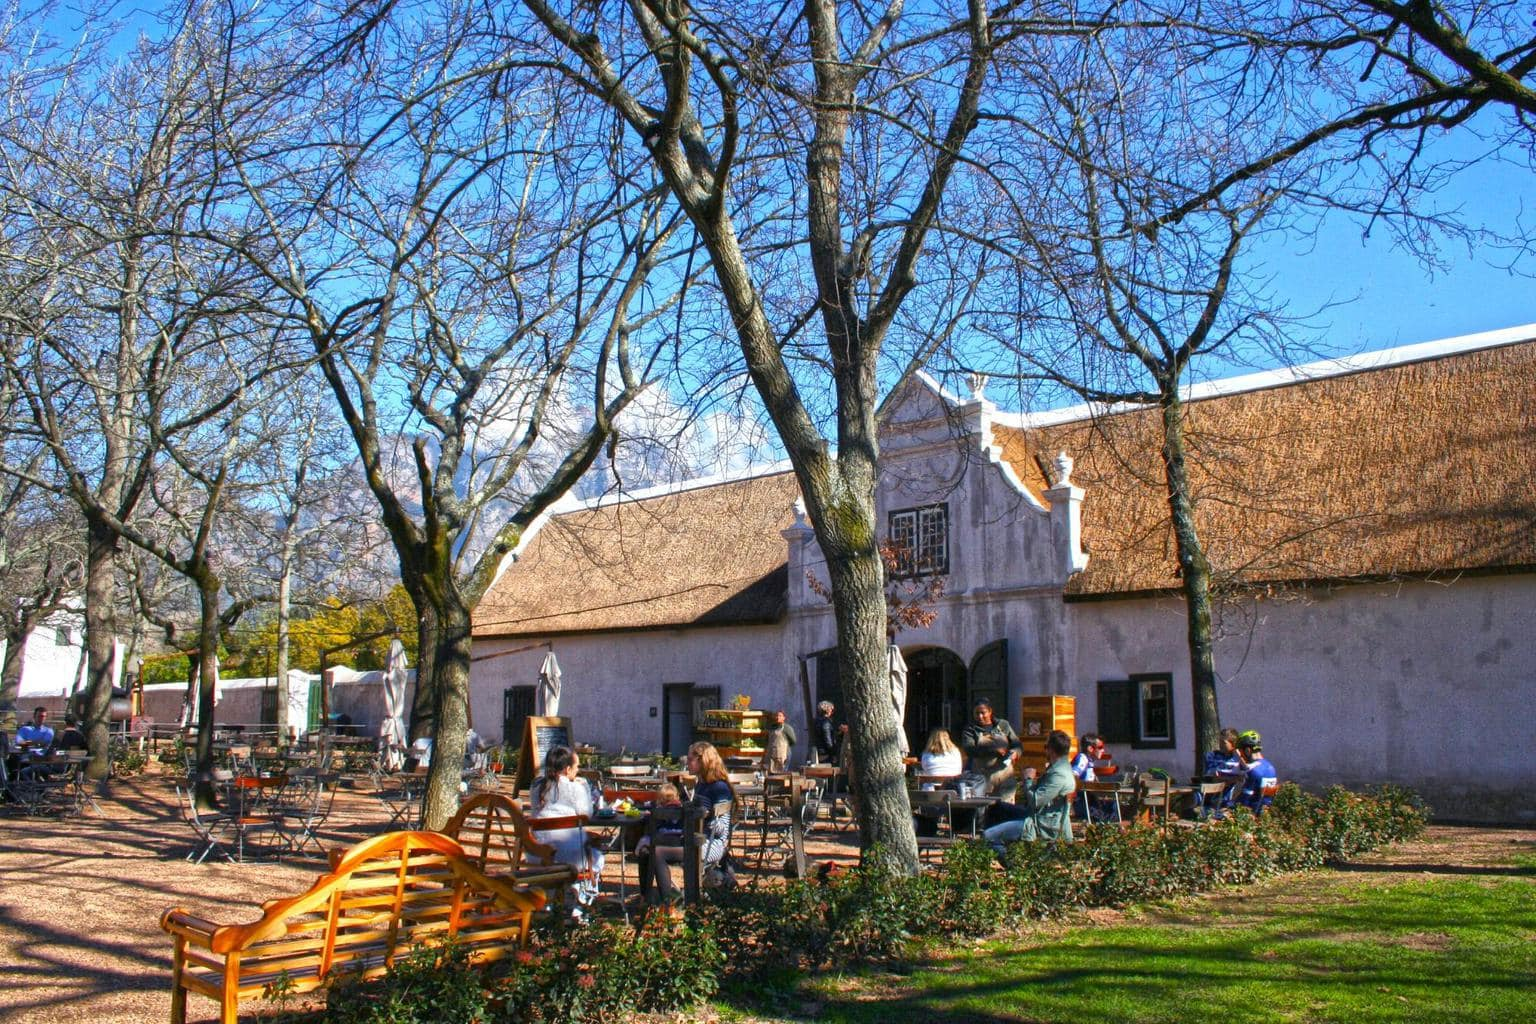 Deli area at Boschendal